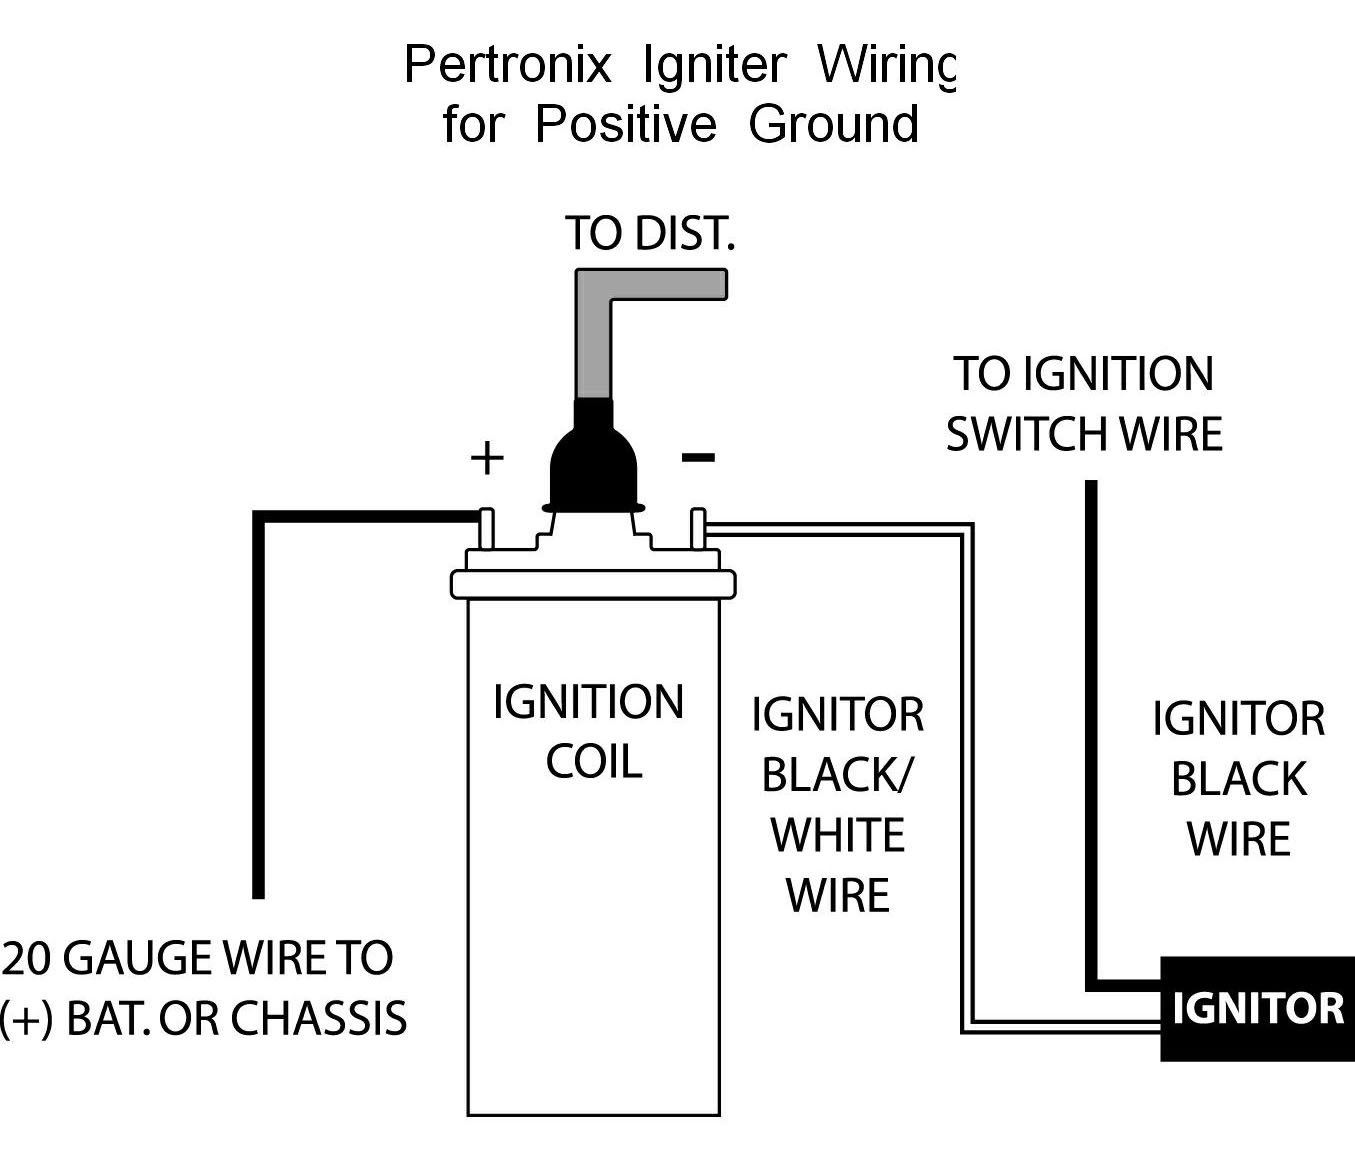 PerPosGndWiring pertronix positive ground wiring 4 wire ignition coil diagram at nearapp.co